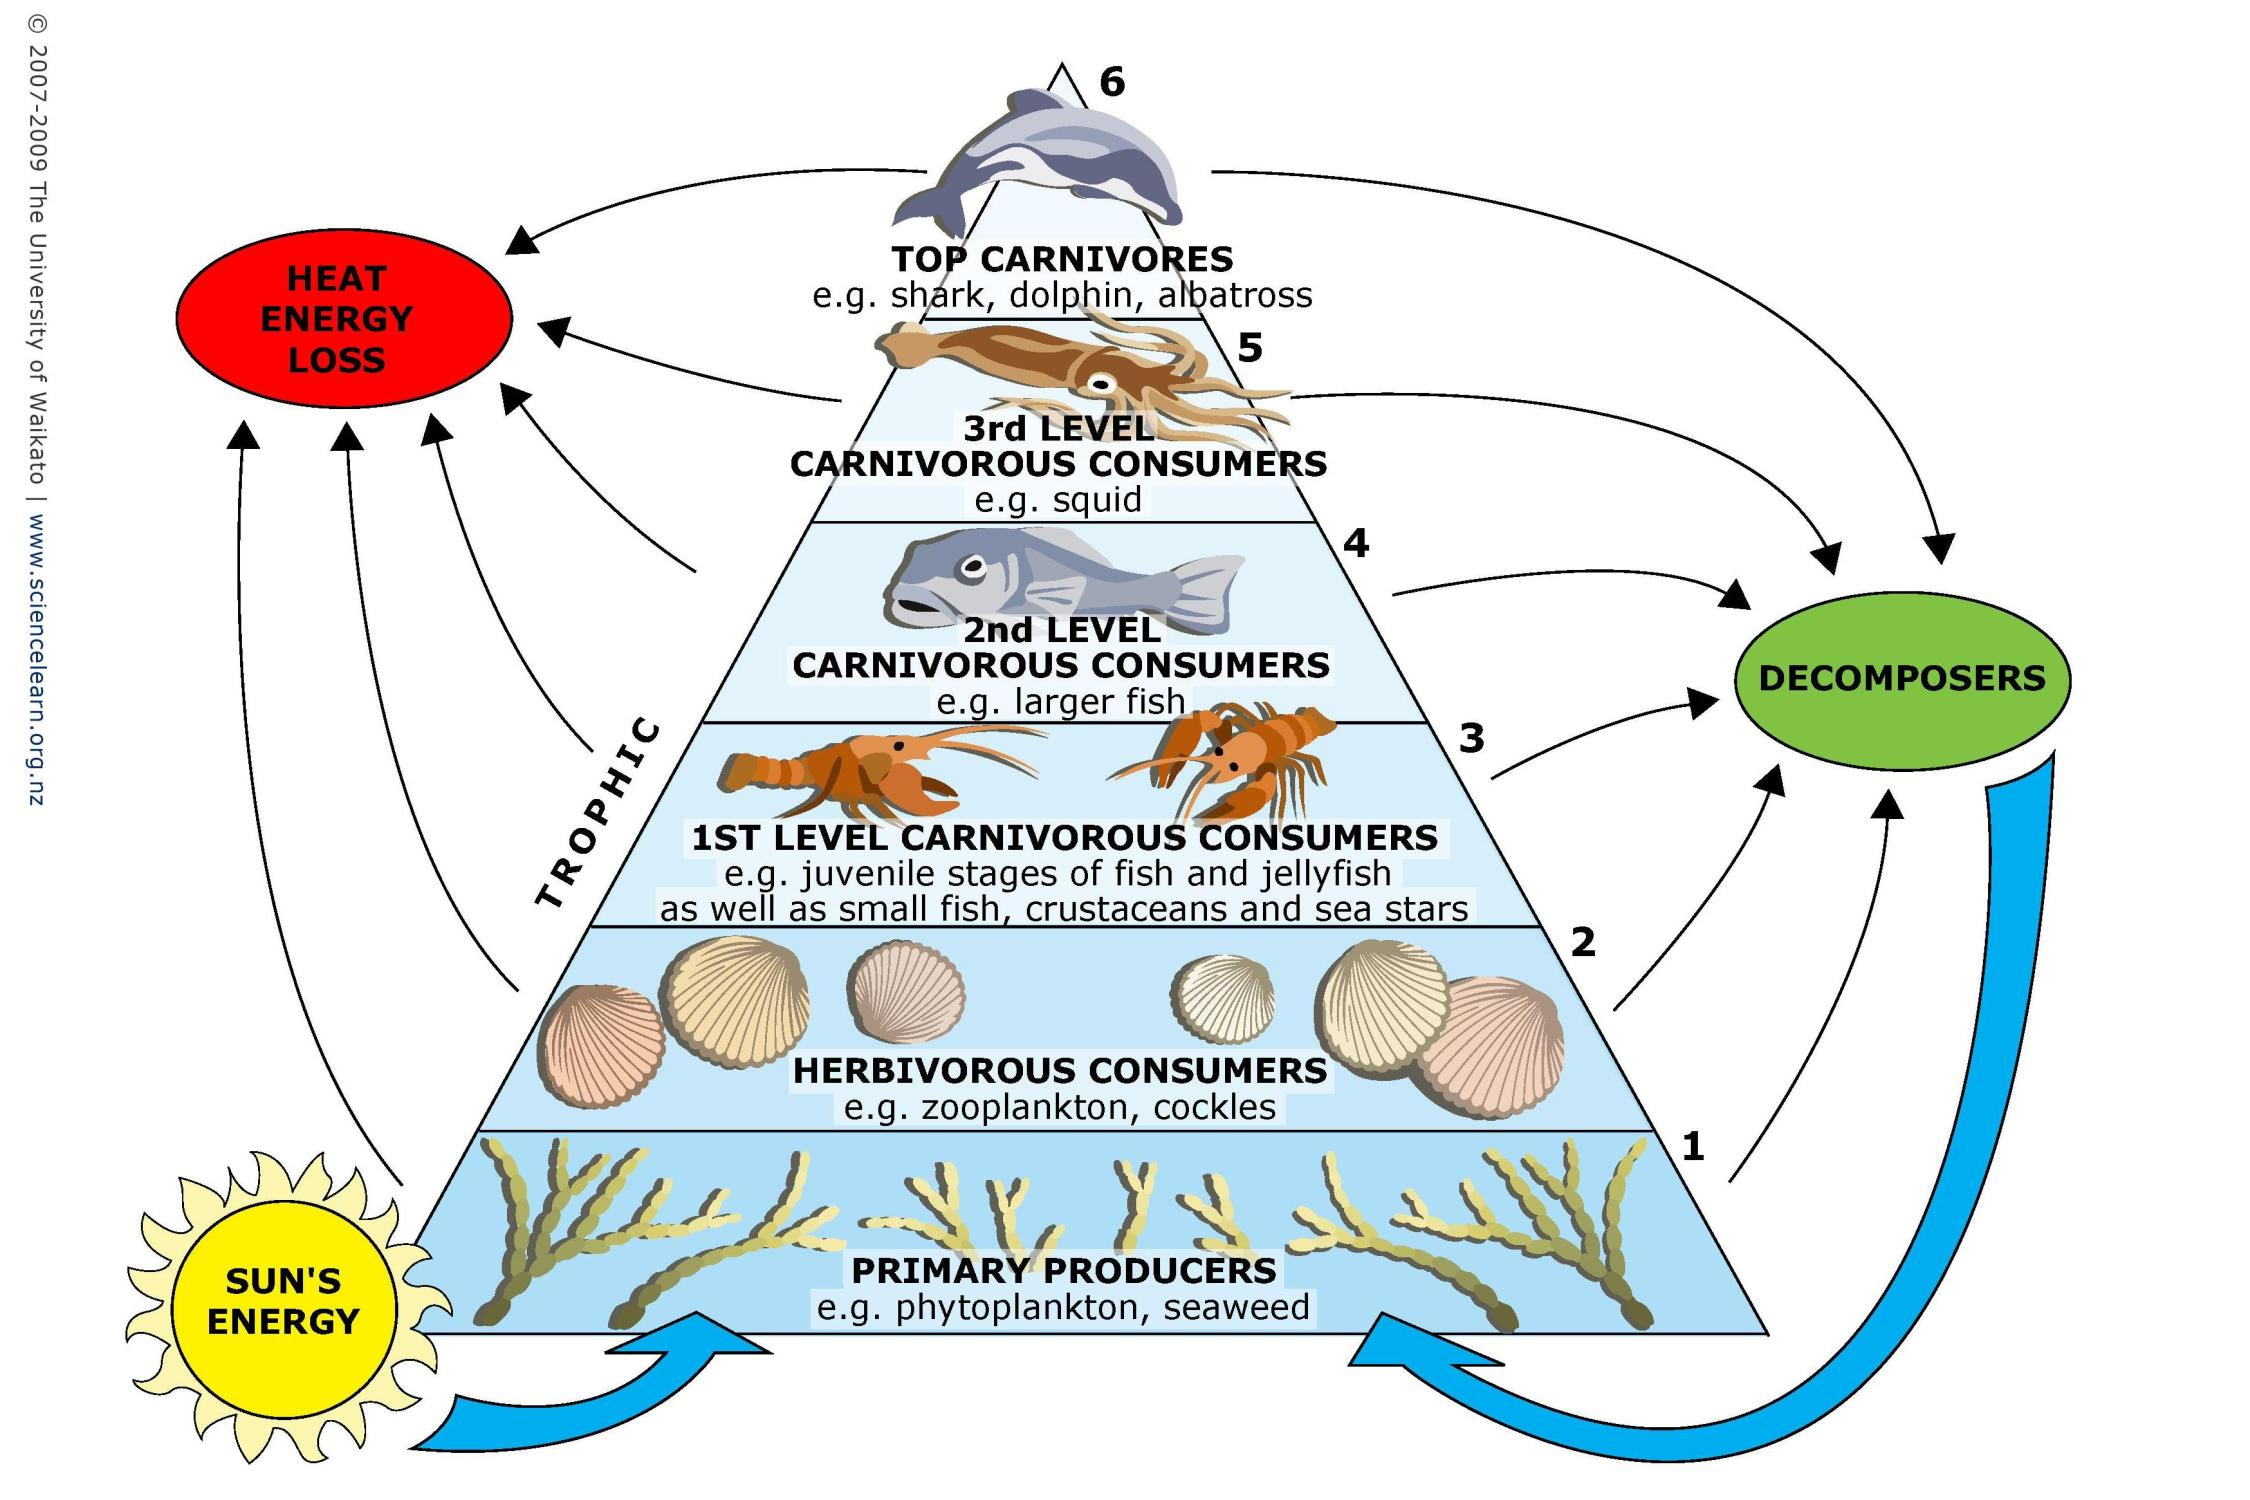 Marine food webs Science Learning Hub – Producers and Consumers Worksheets